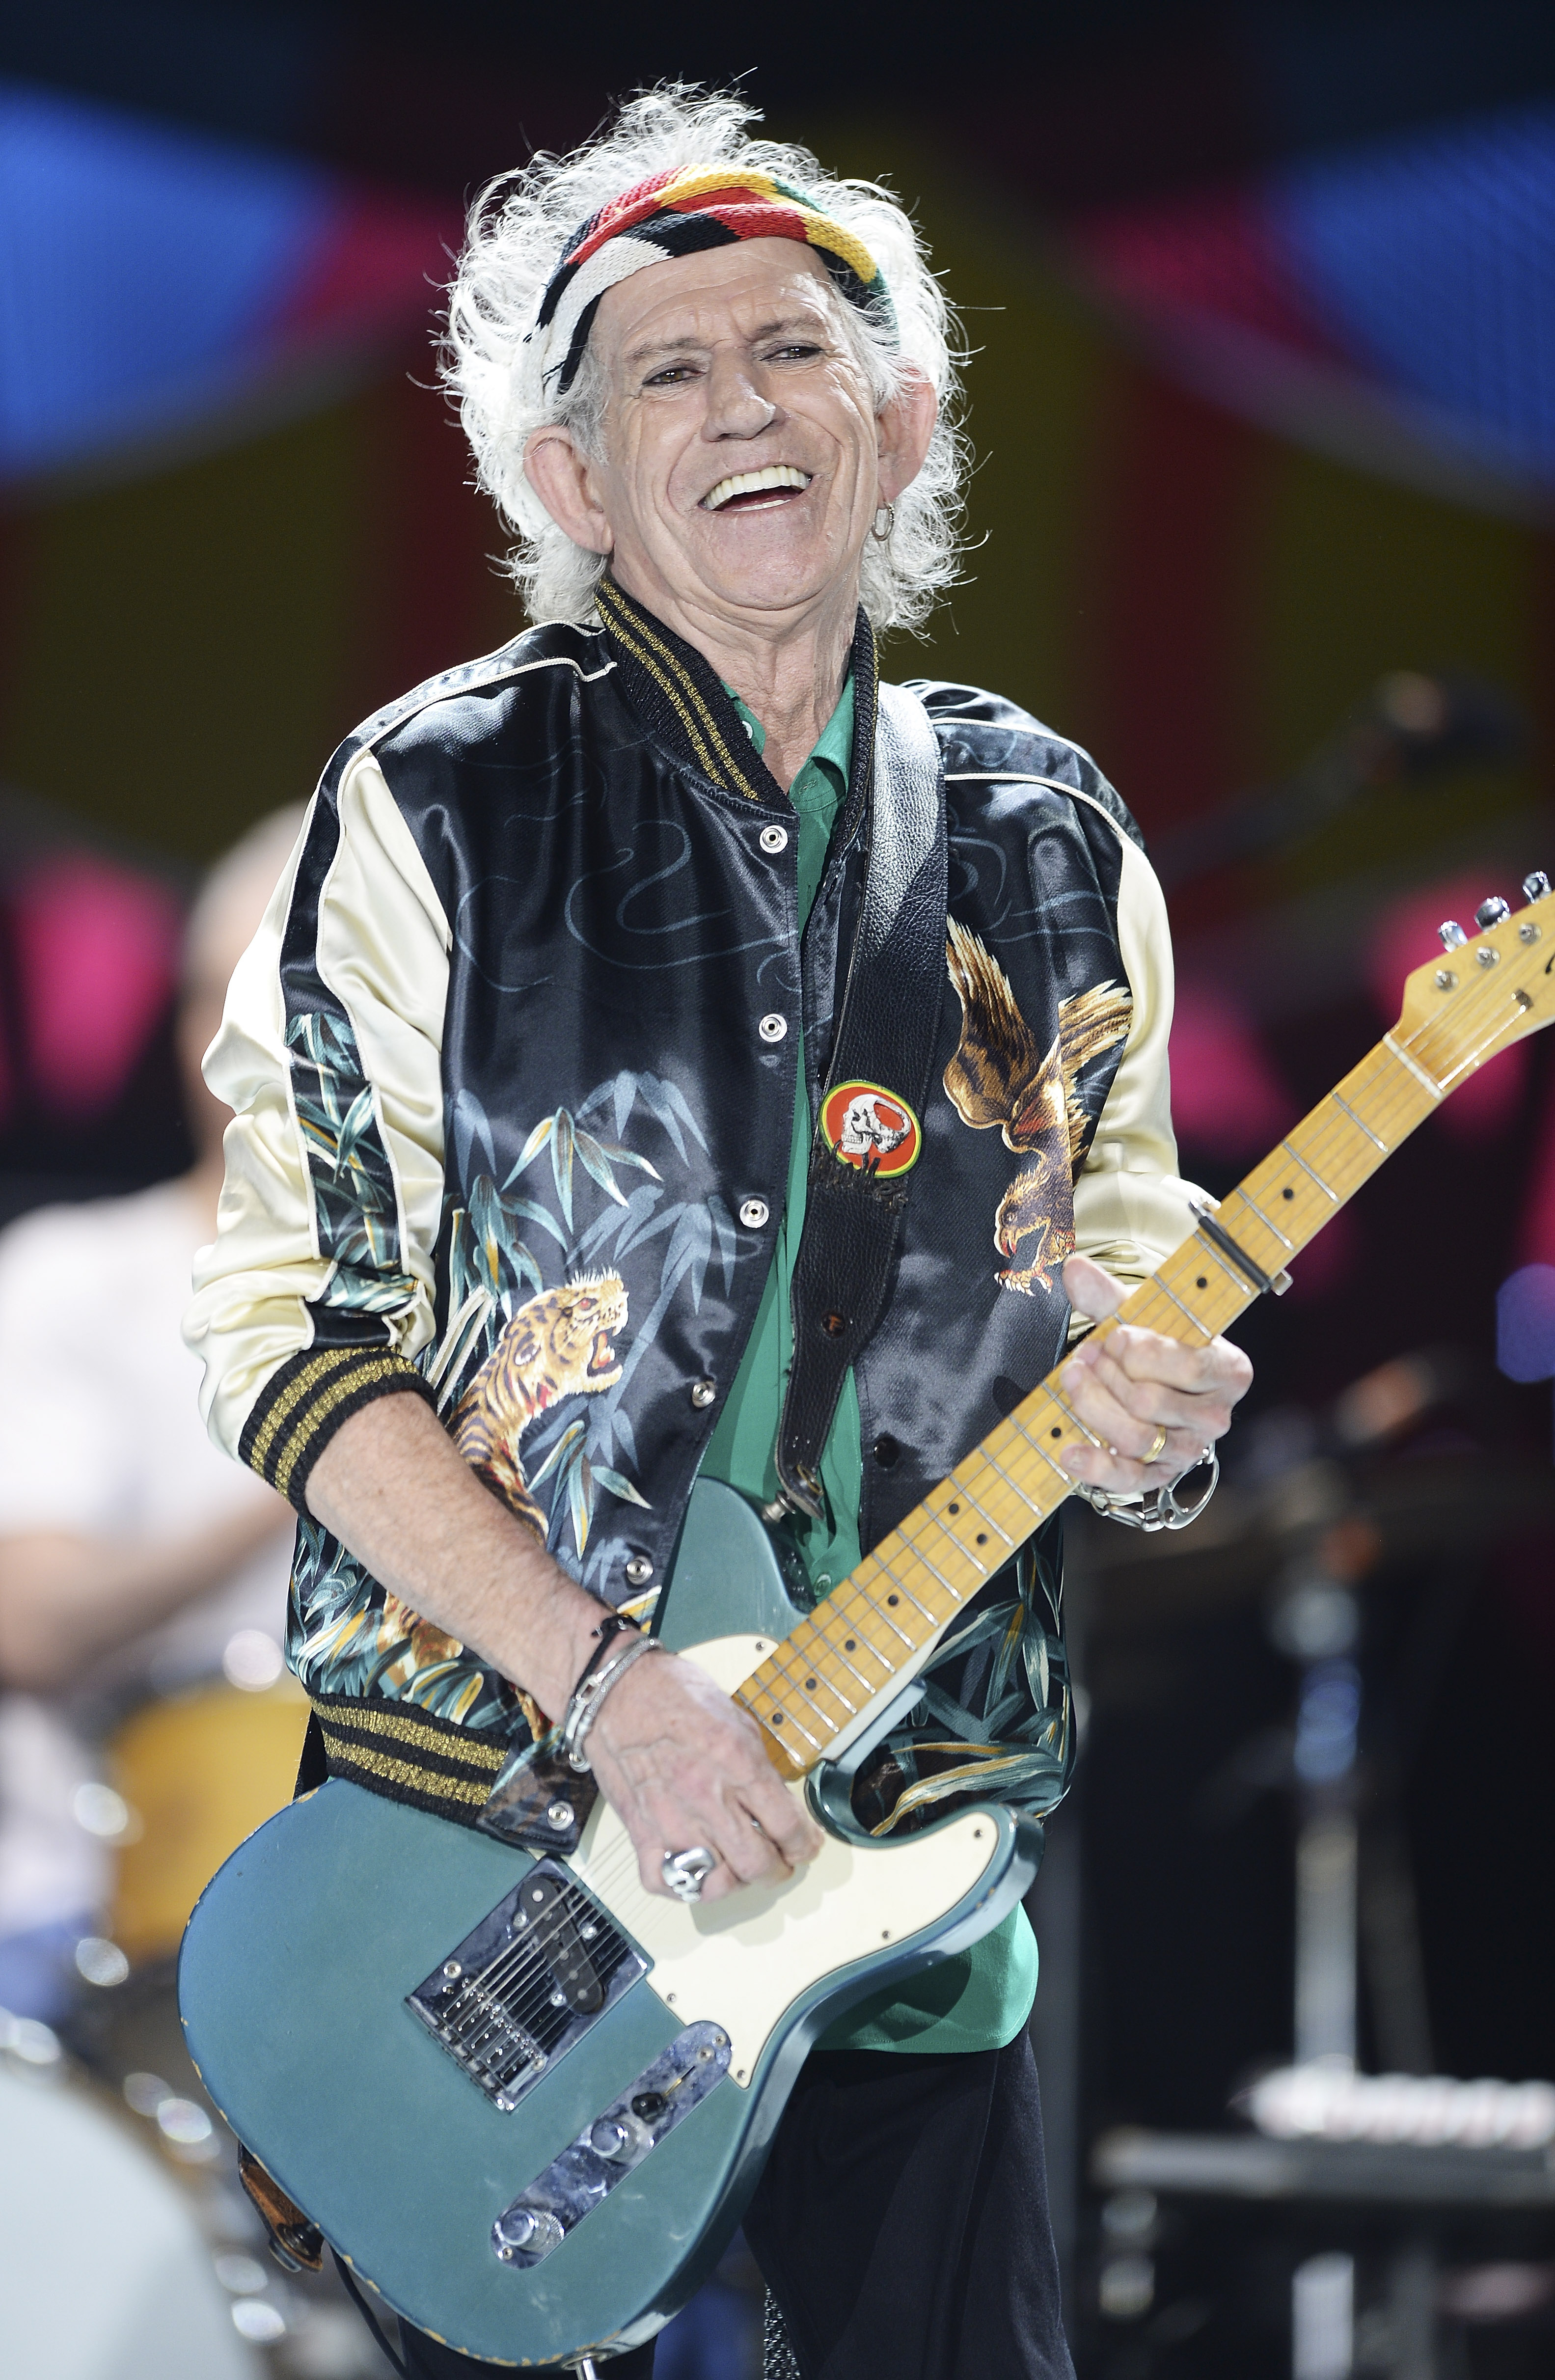 HAVANA, CUBA - MARCH 25:  Keith Richards performs on stage during The Rolling Stones concert at Ciudad Deportiva on March 25,